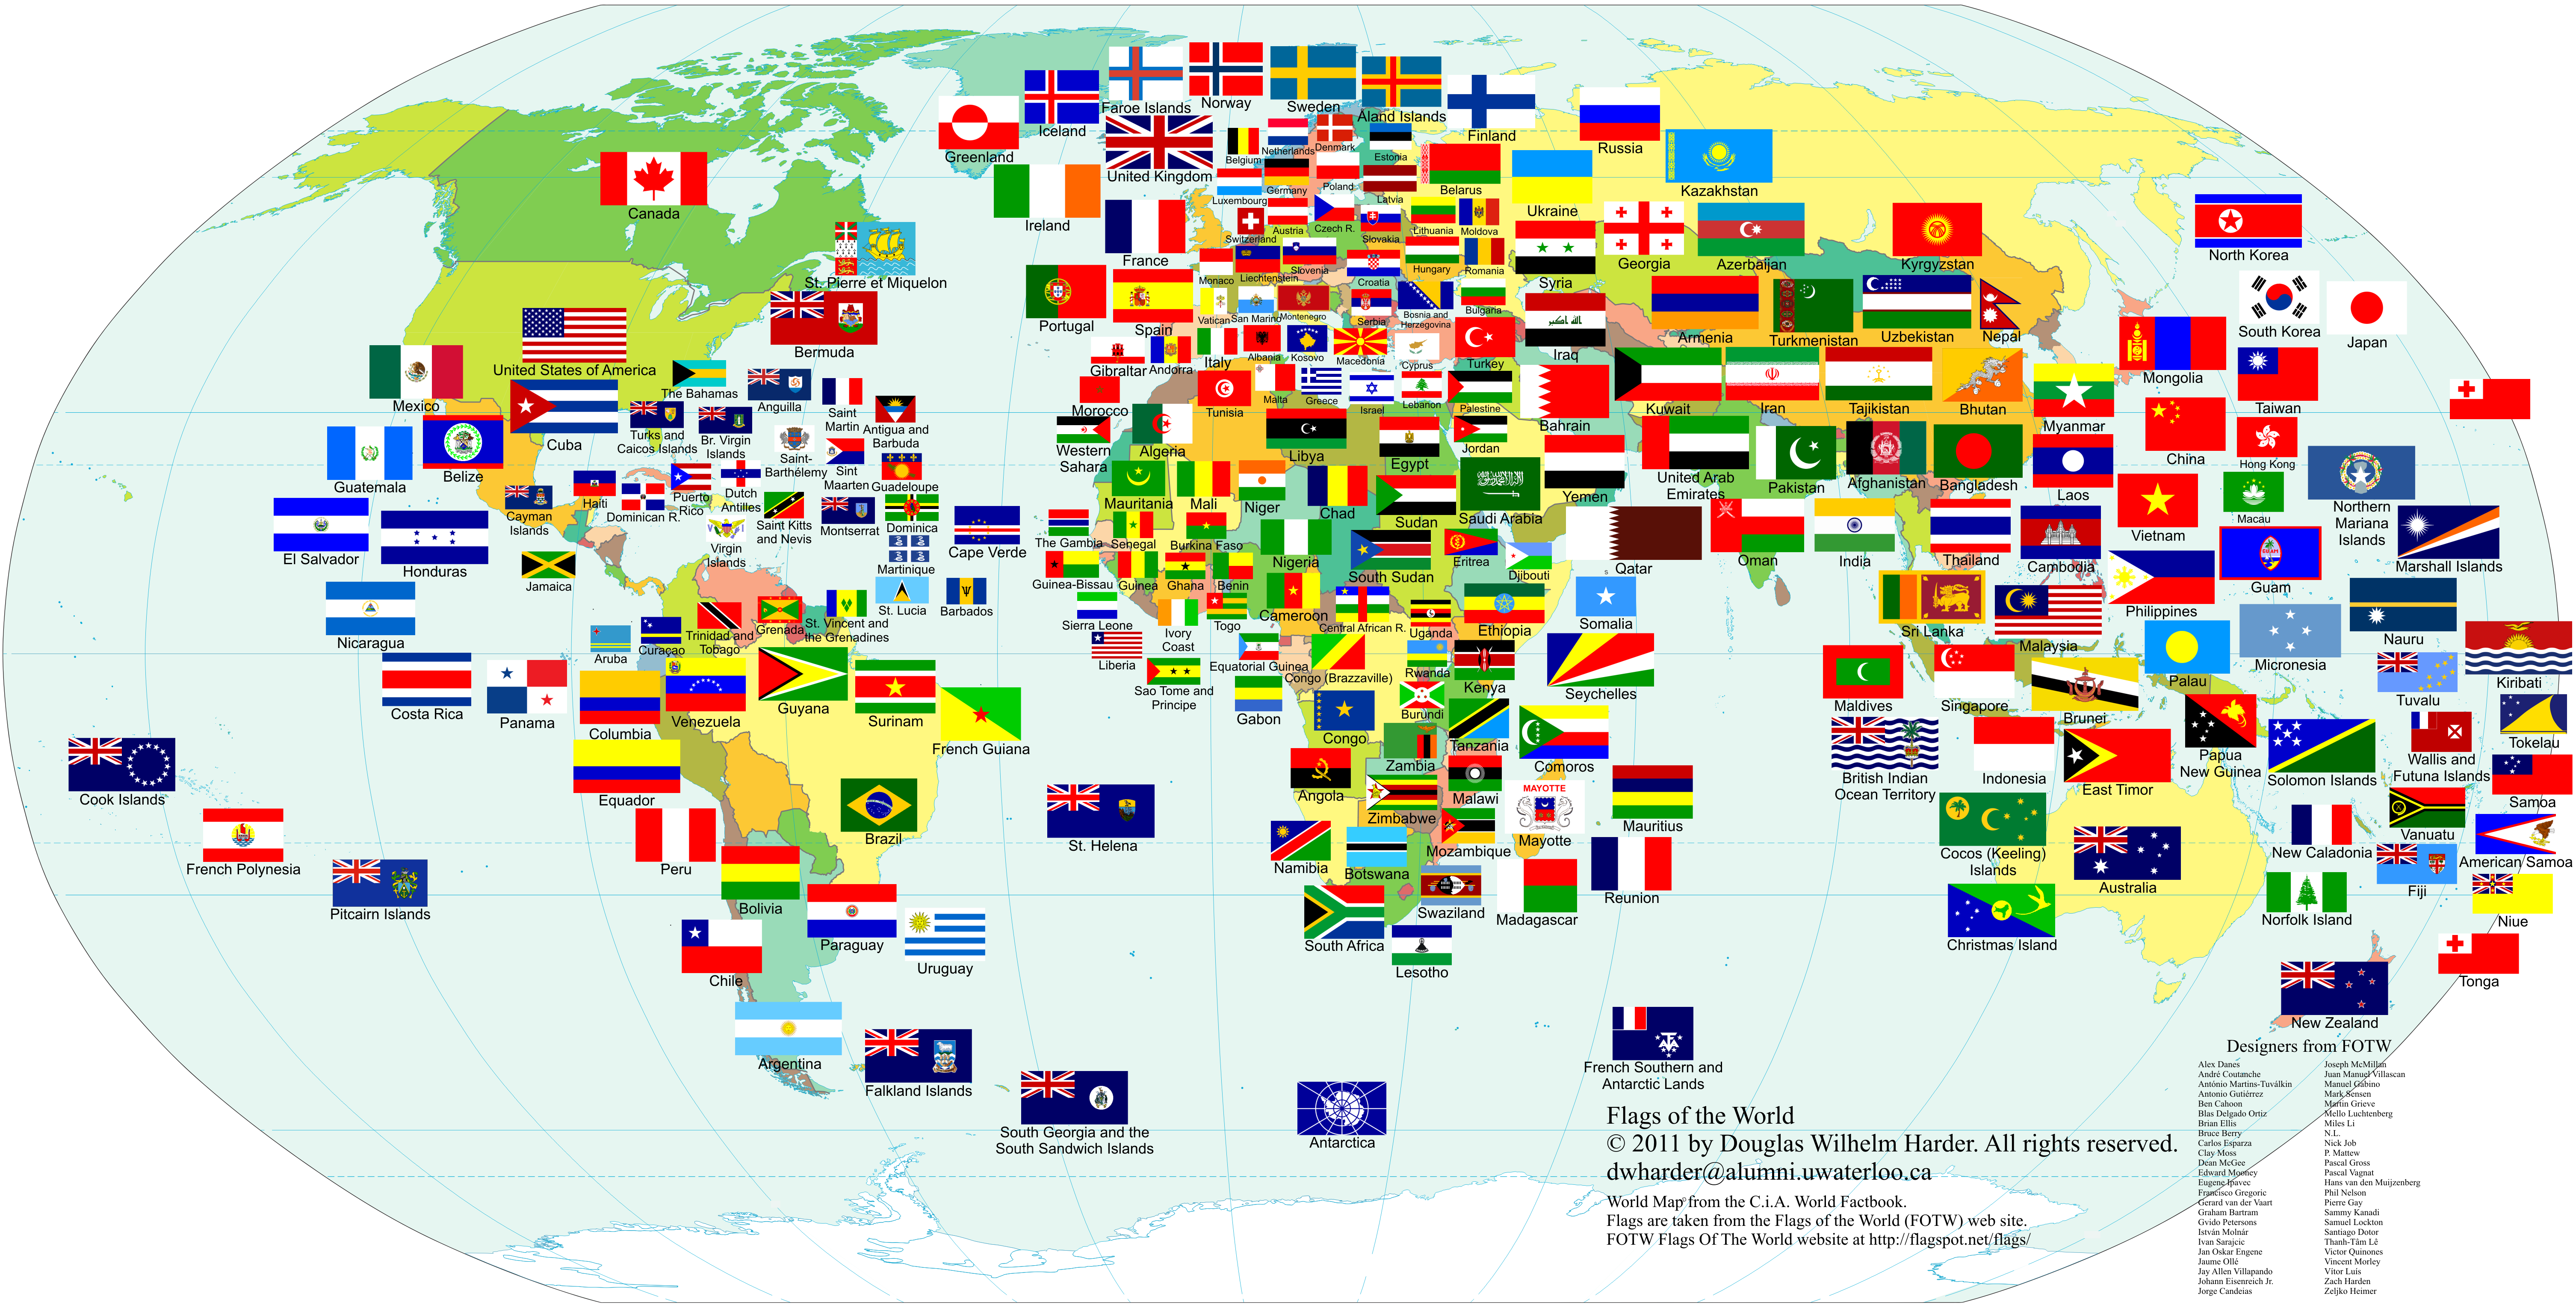 World map by flags new political world map vector illustration flags flags of the world gumiabroncs Choice Image